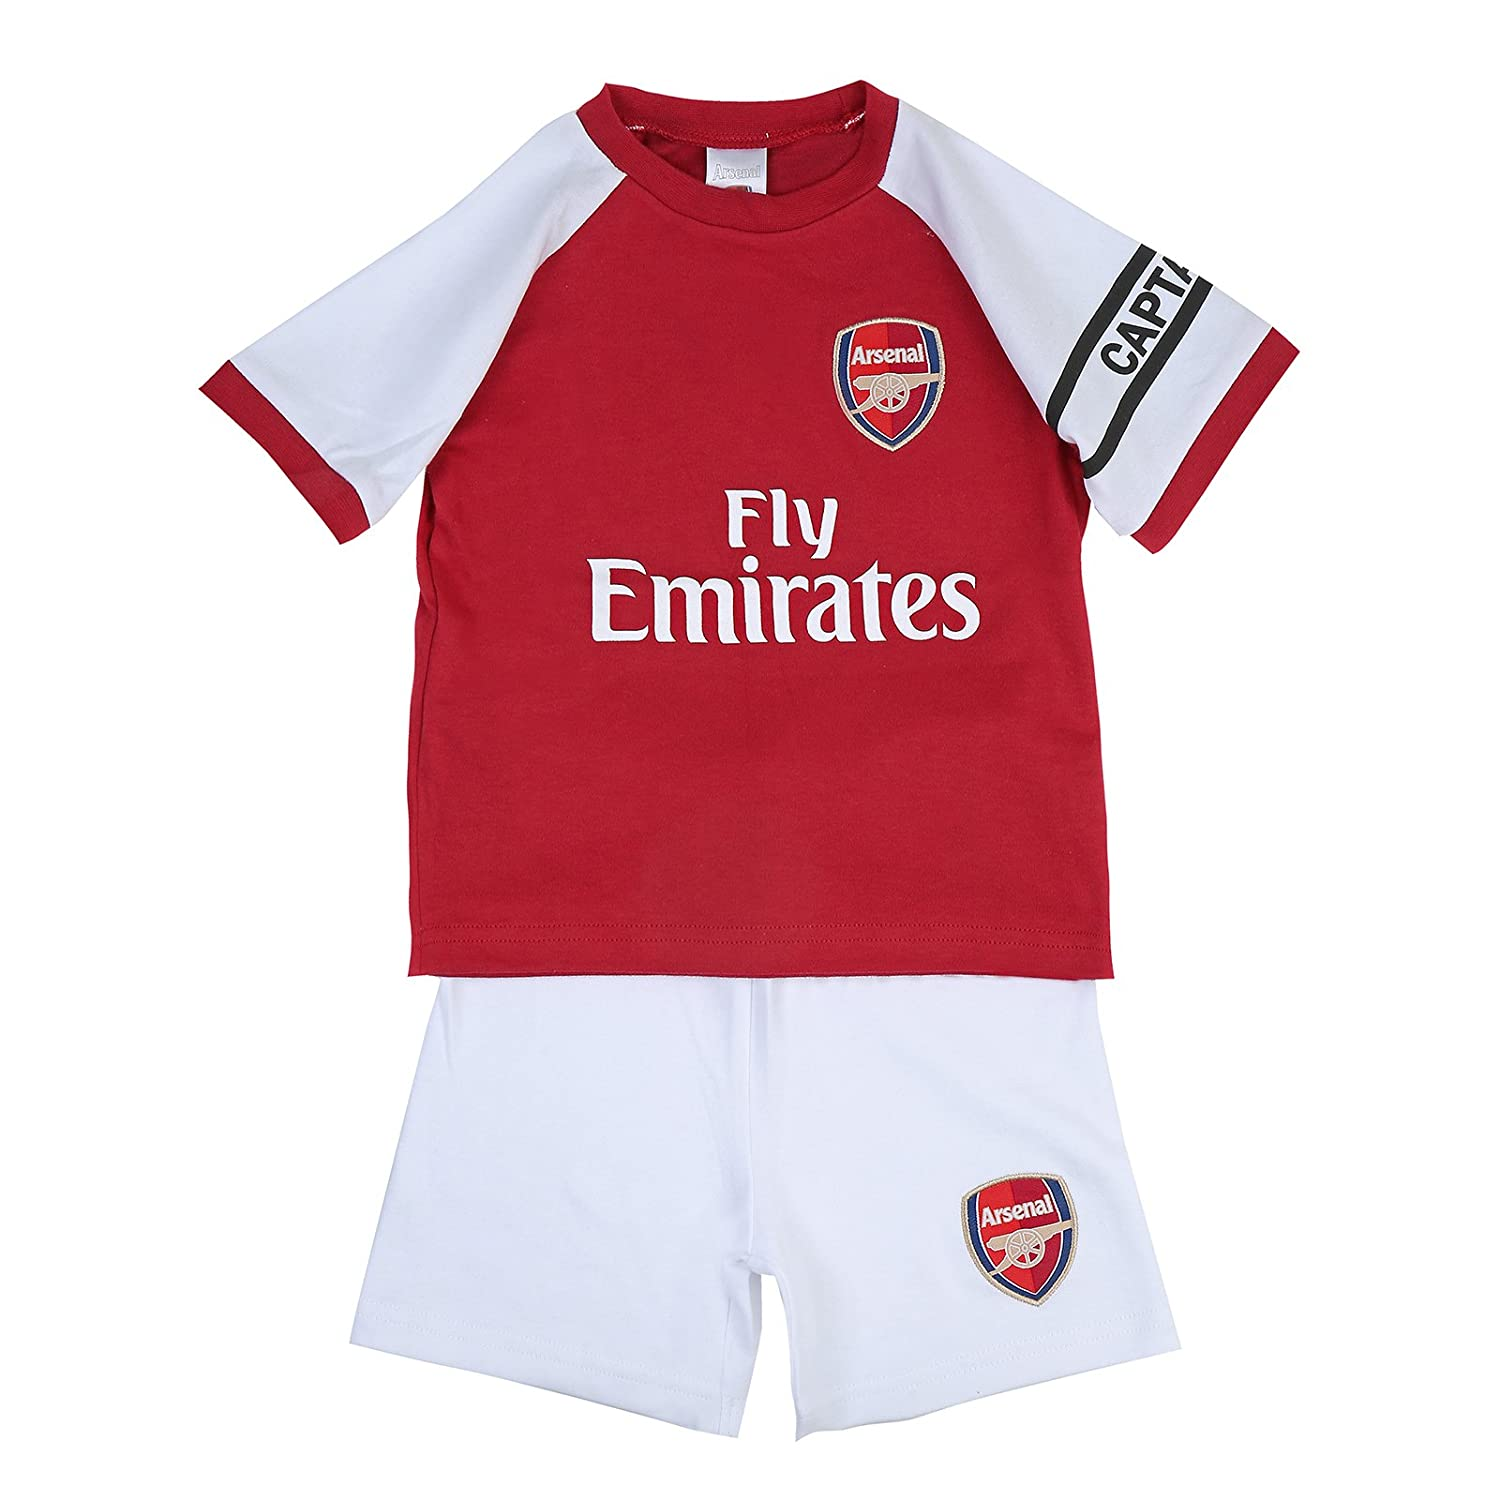 Official Arsenal Baby Core Kit T-shirt & Shorts Set - 2017/18 Season Arsenal FC